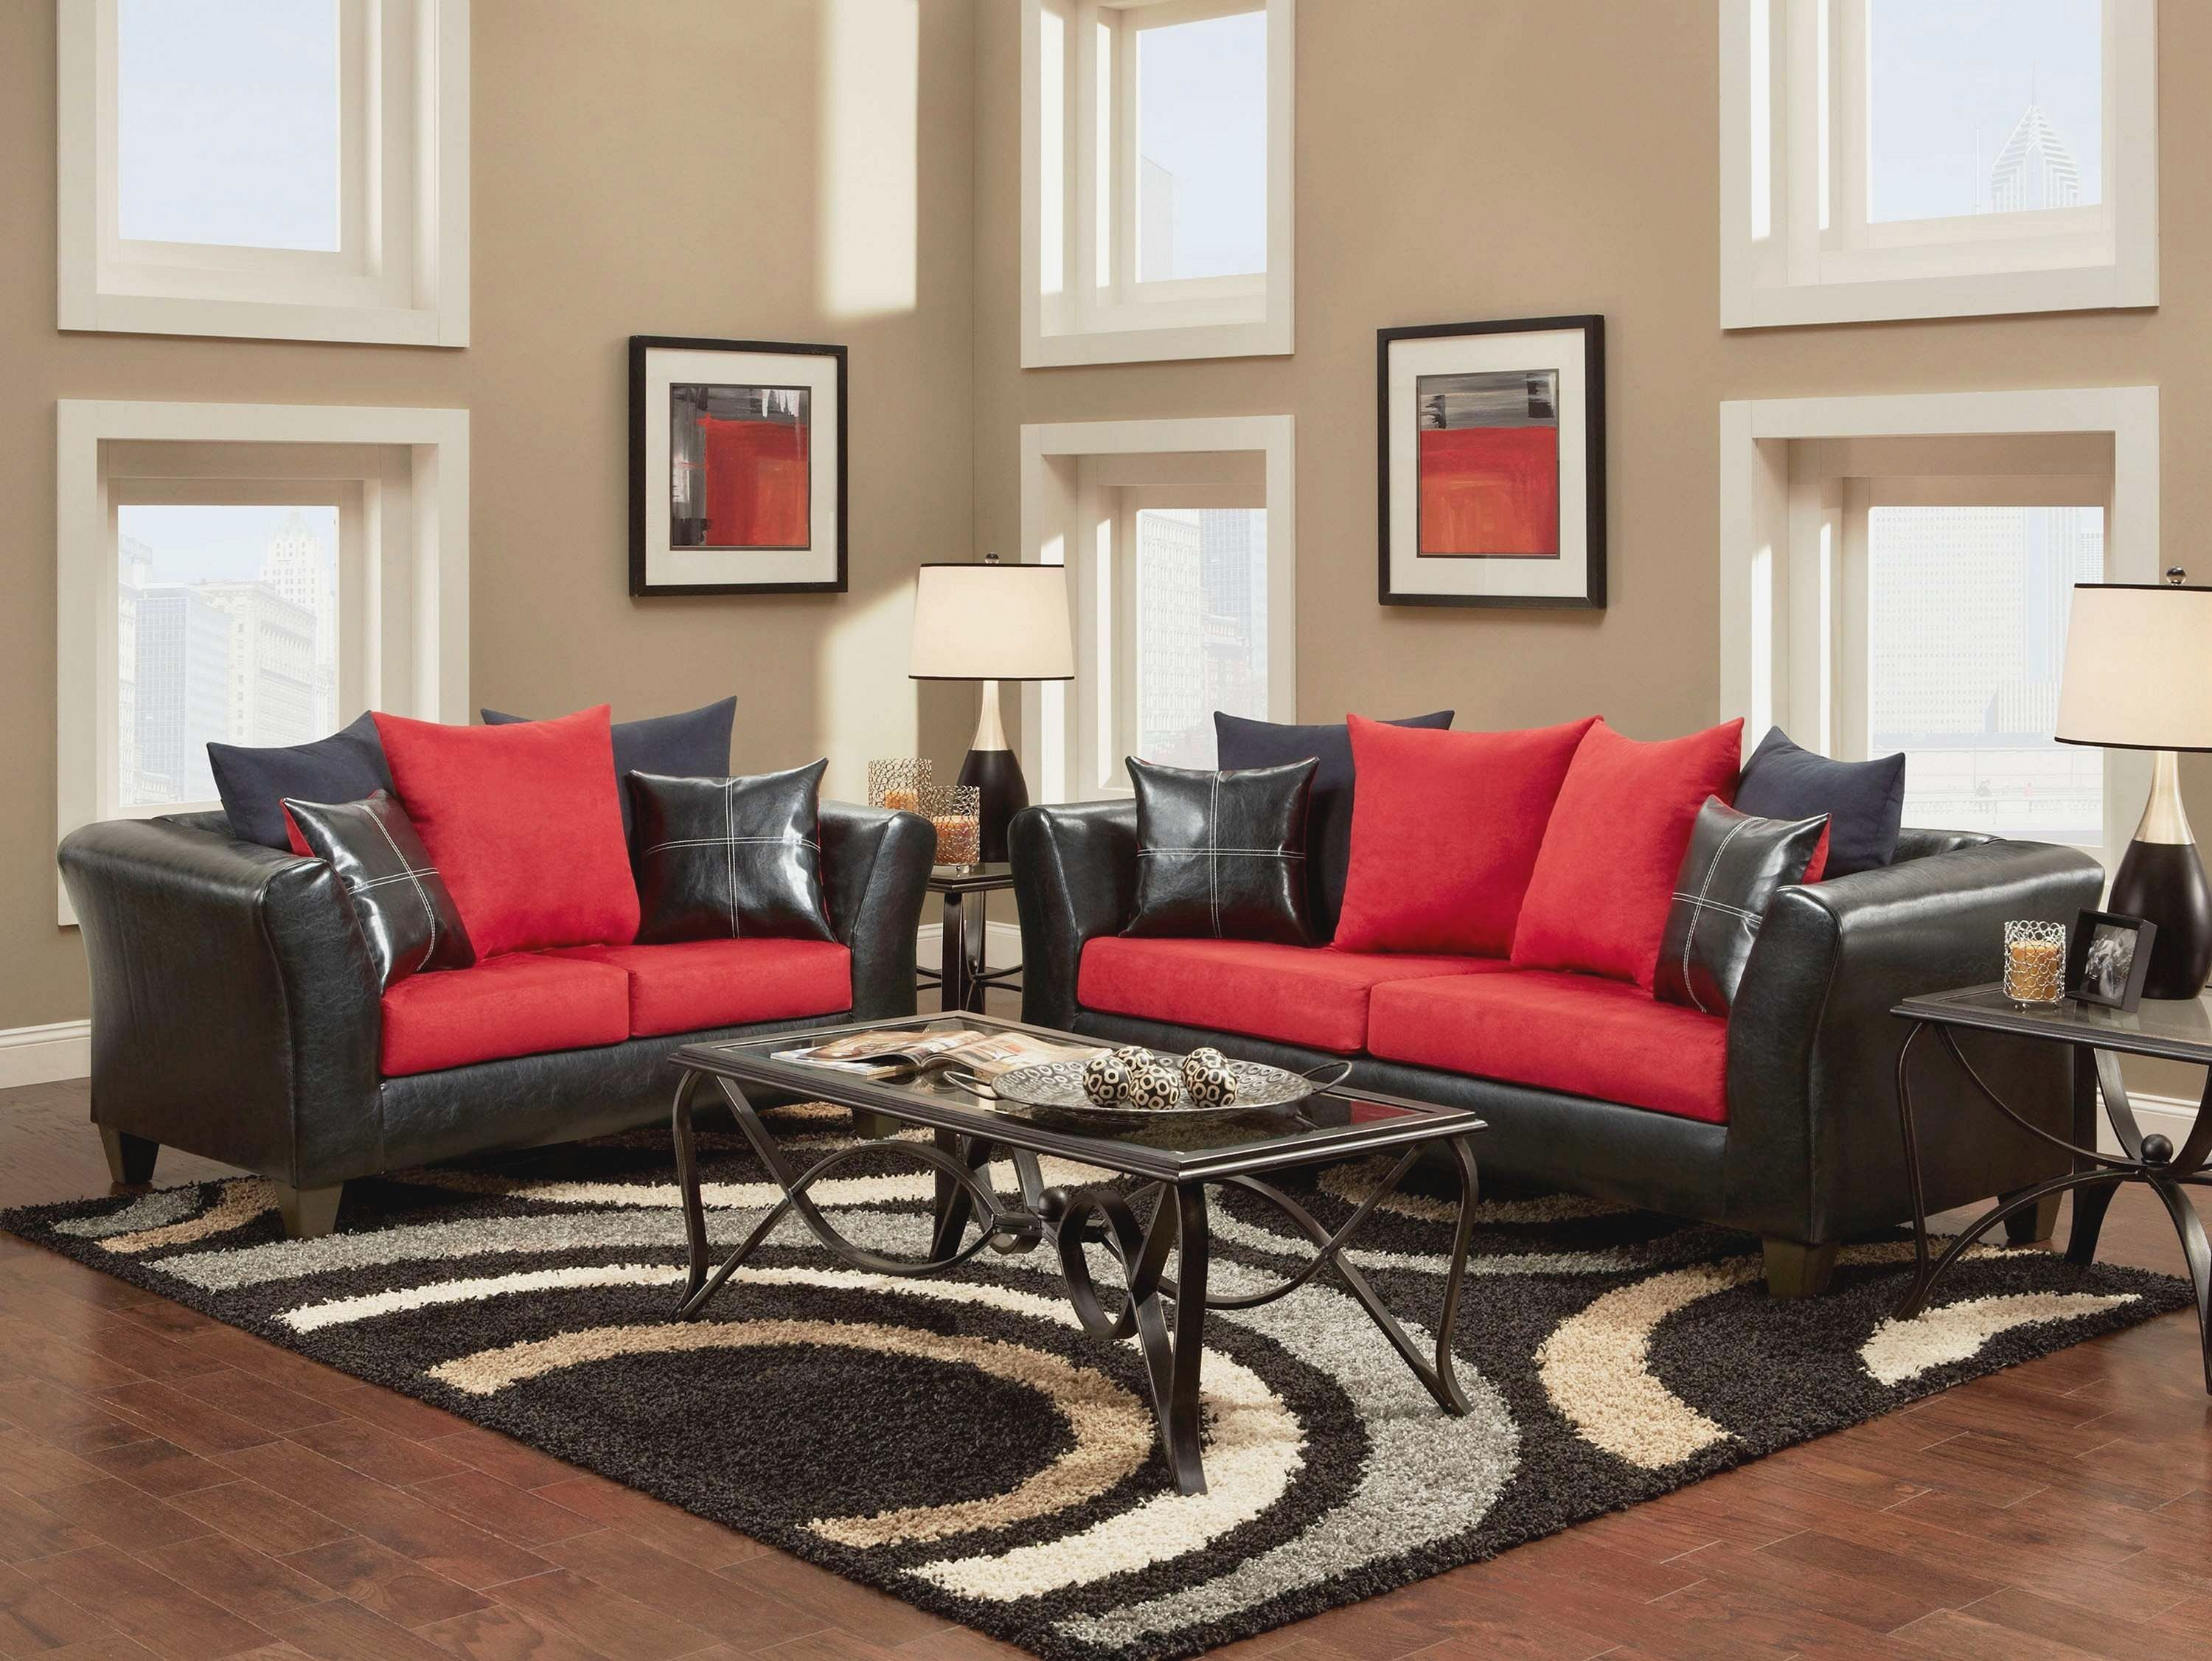 Phenomenon 20 Best Red Living Room Paint Color Decoration Ideas Https Teracee Com Living Room Red Living Room Decor Black And Red Living Room Living Room Red